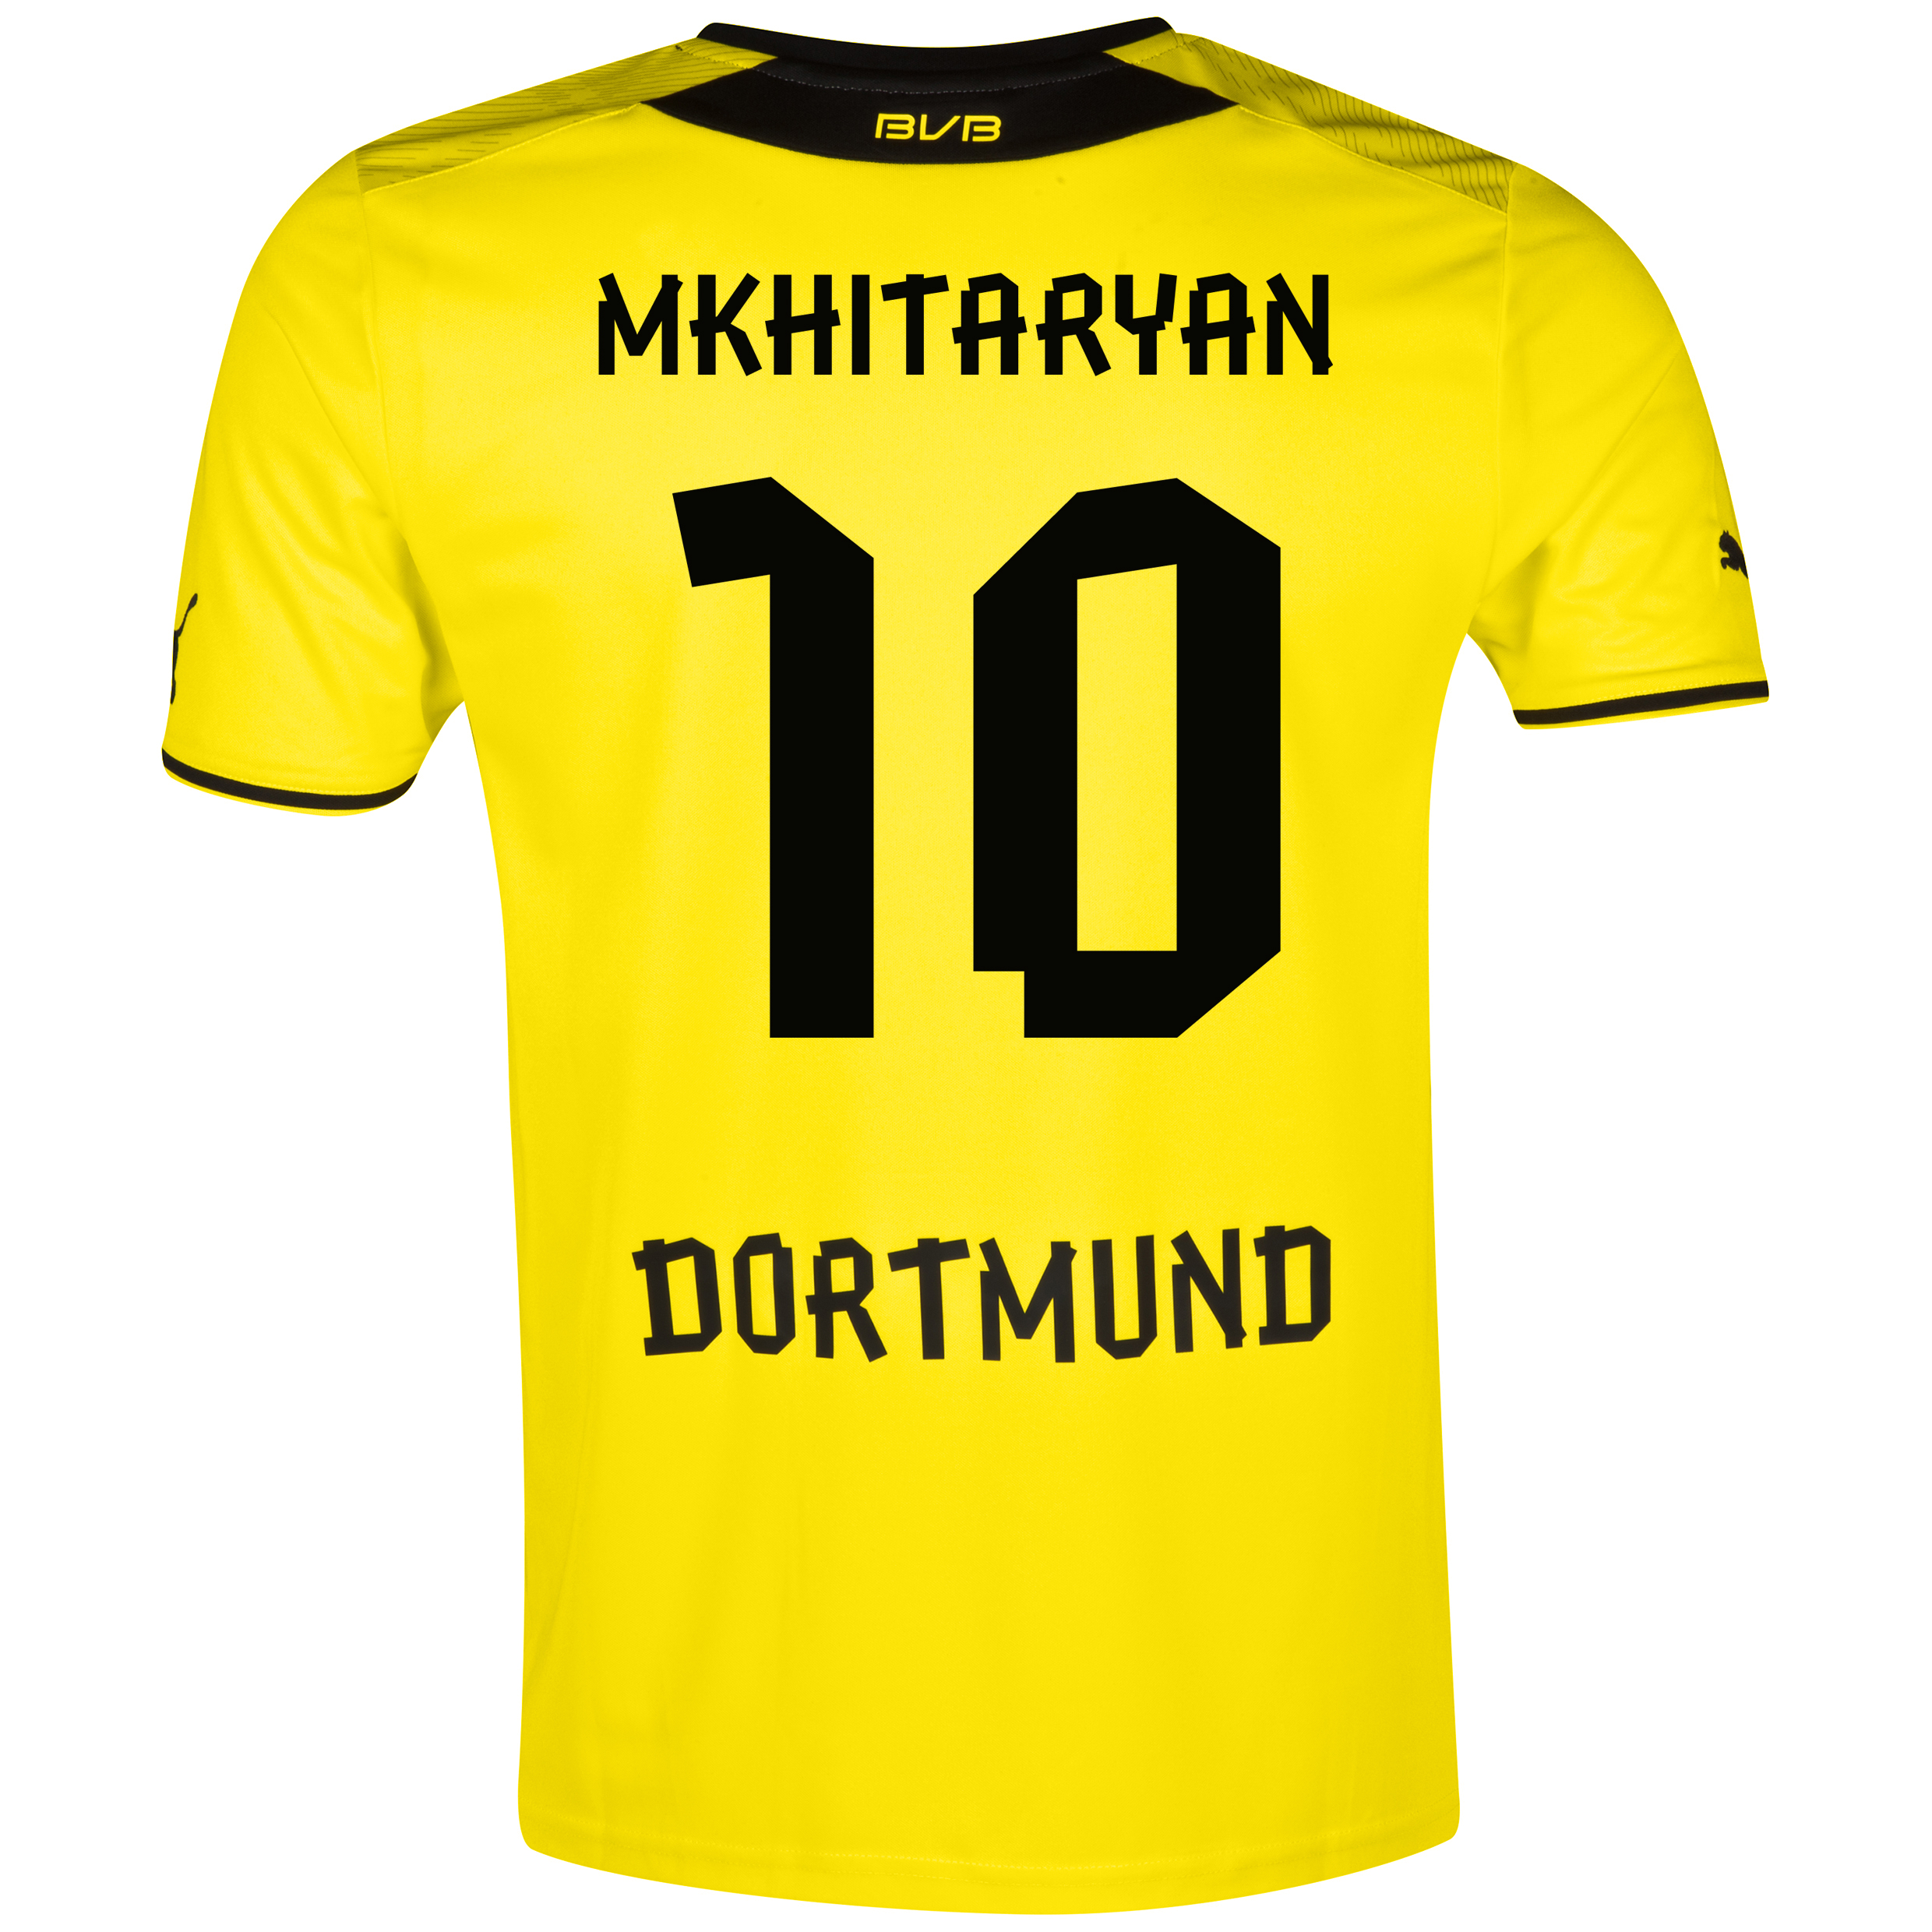 BVB Home Shirt 2013/14 with Mkhitaryan 10 printing